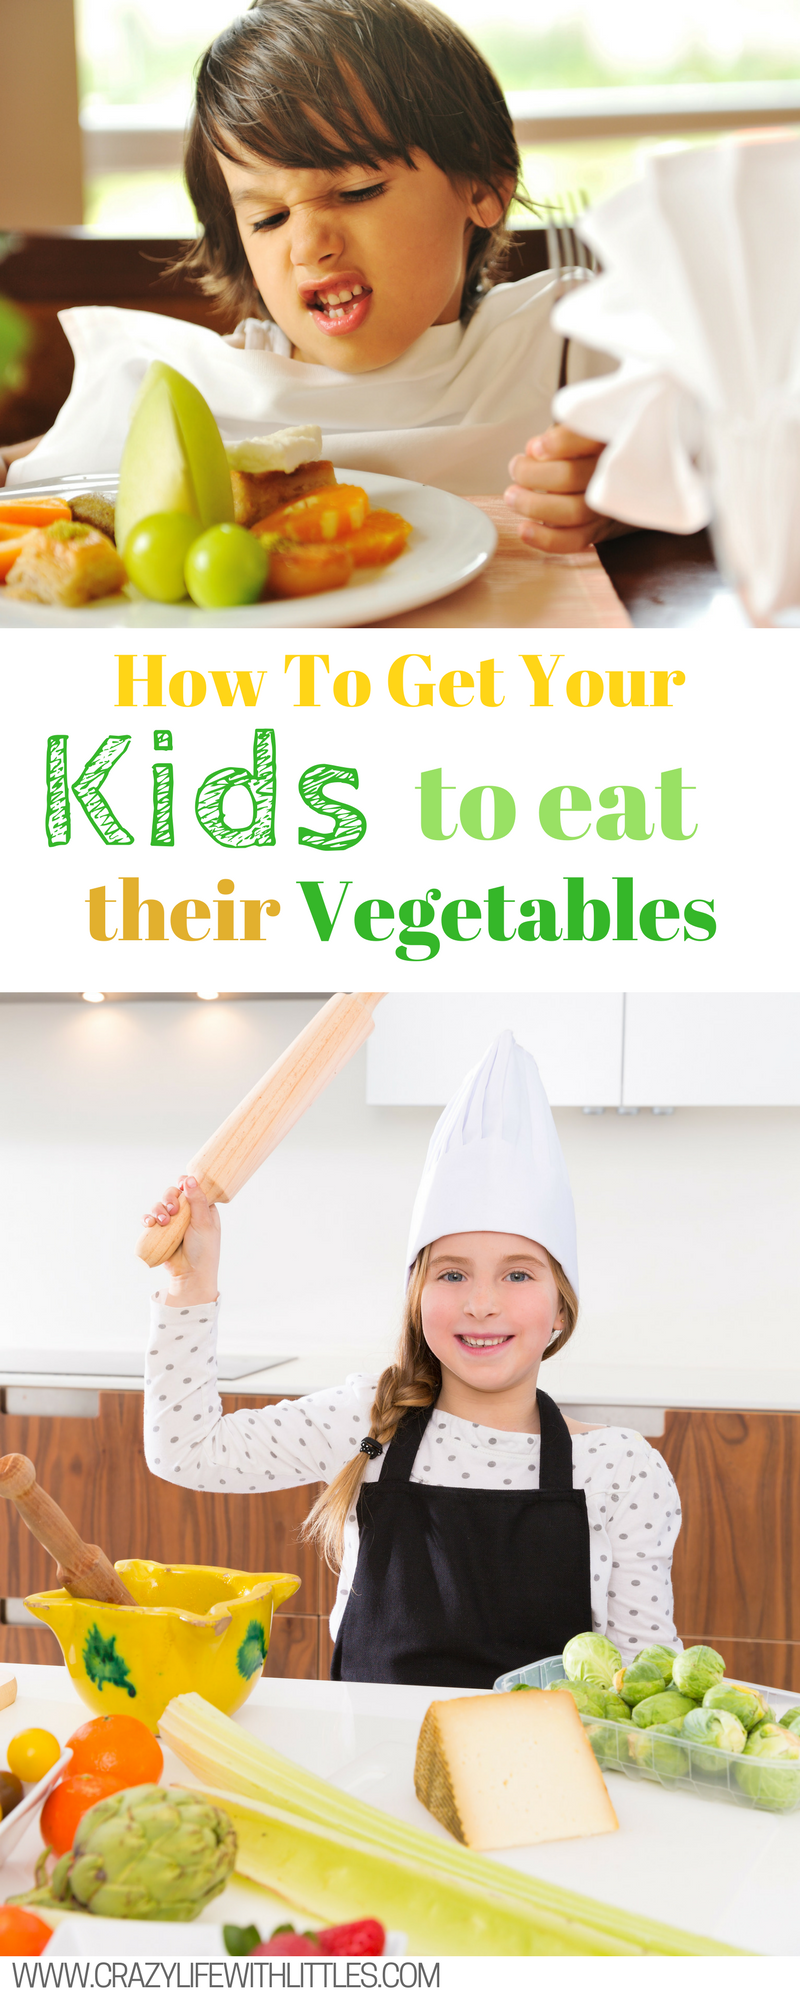 How to get your kids to eat their vegetables, Picky Eaters, Kids Eating Tips, Kids Veggies, Children Eating Tips, Vegetable Ideas #ad #HookedonVeggies https://ooh.li/1c2cf64 For more info visit www.crazylifewithlittles.com